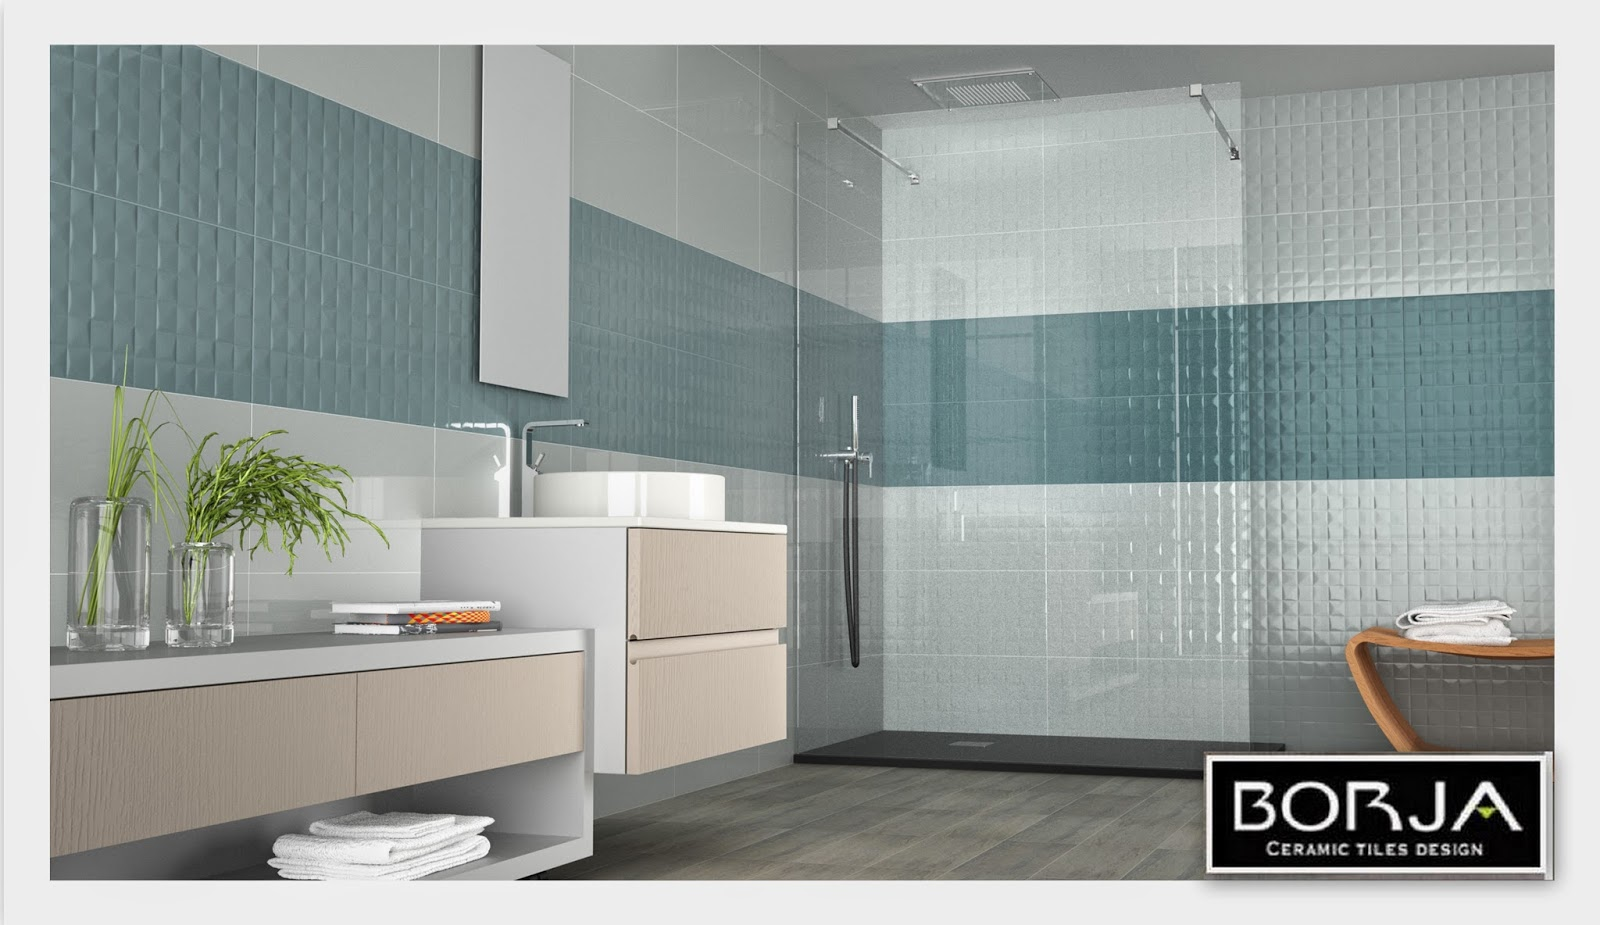 new walls: bathroom & kitchens 30x60 | borja ceramic tiles design